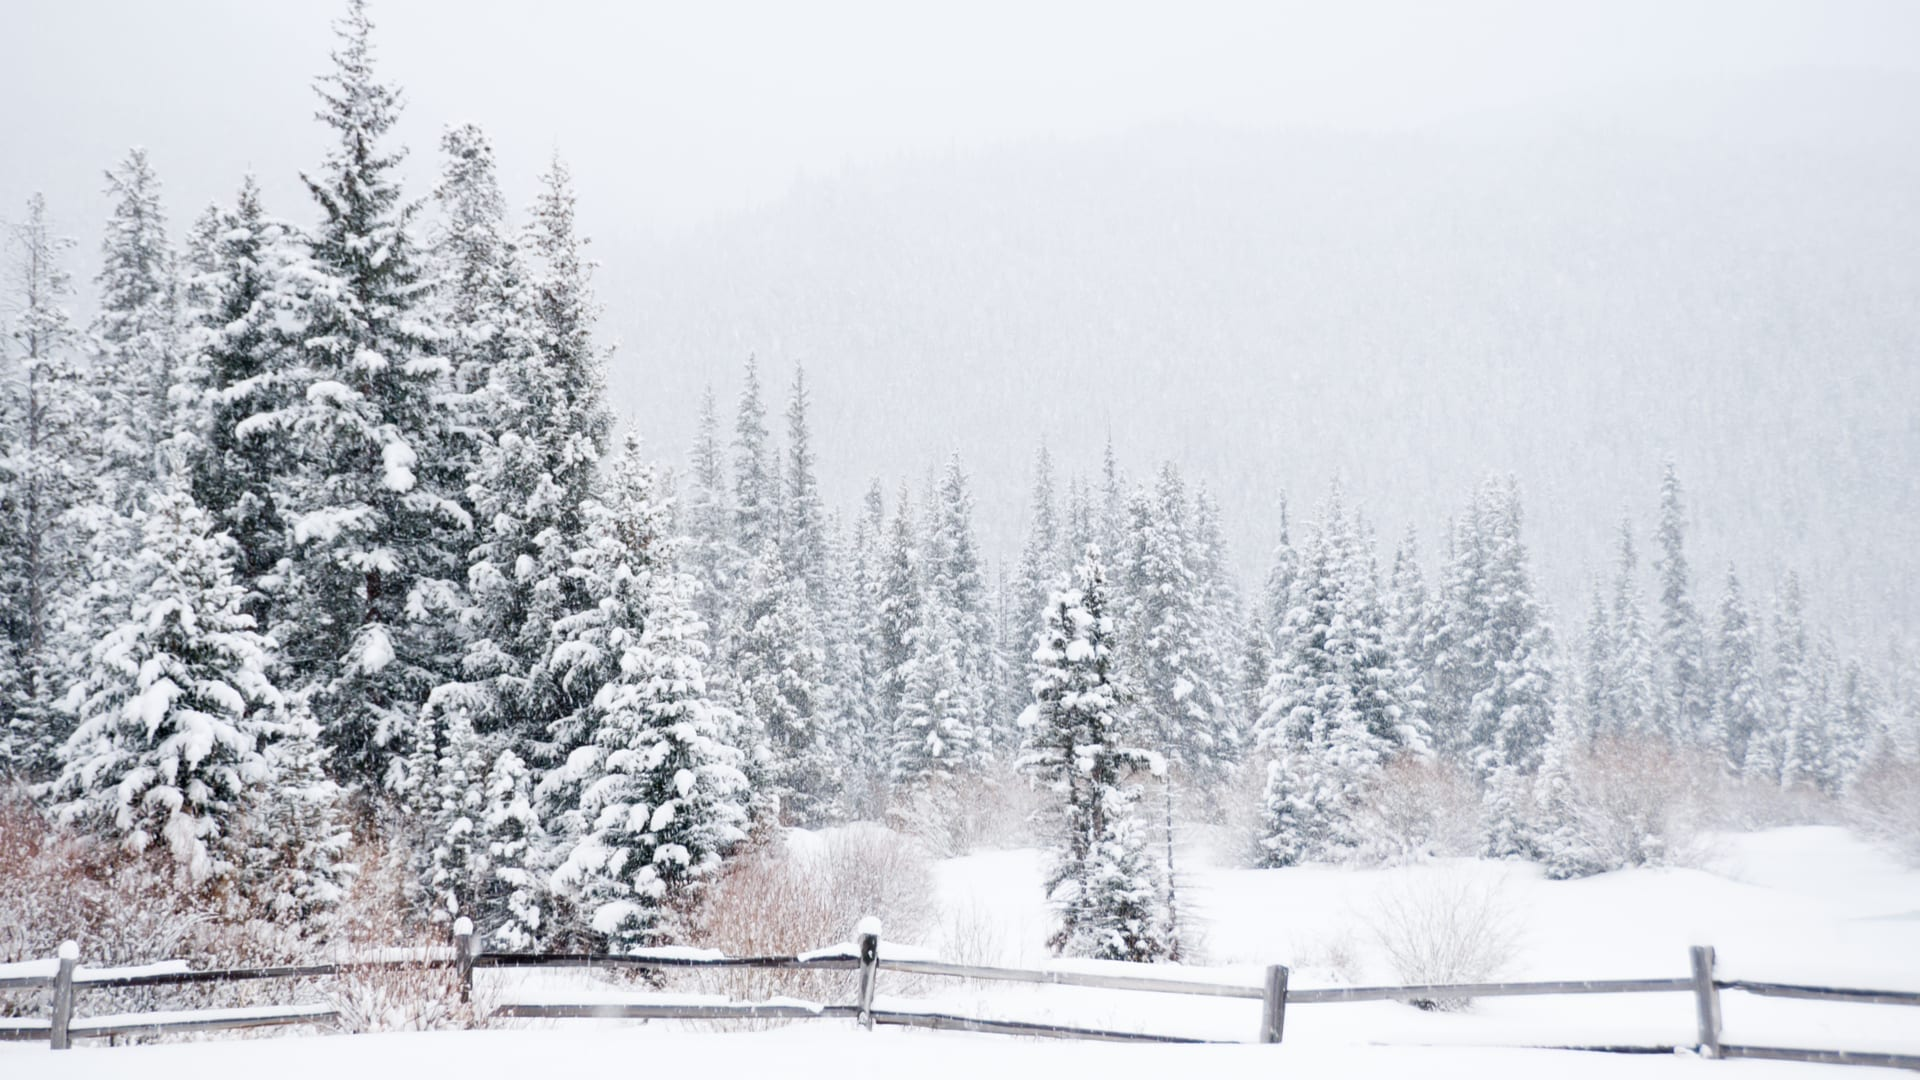 trees in winter prevent damage